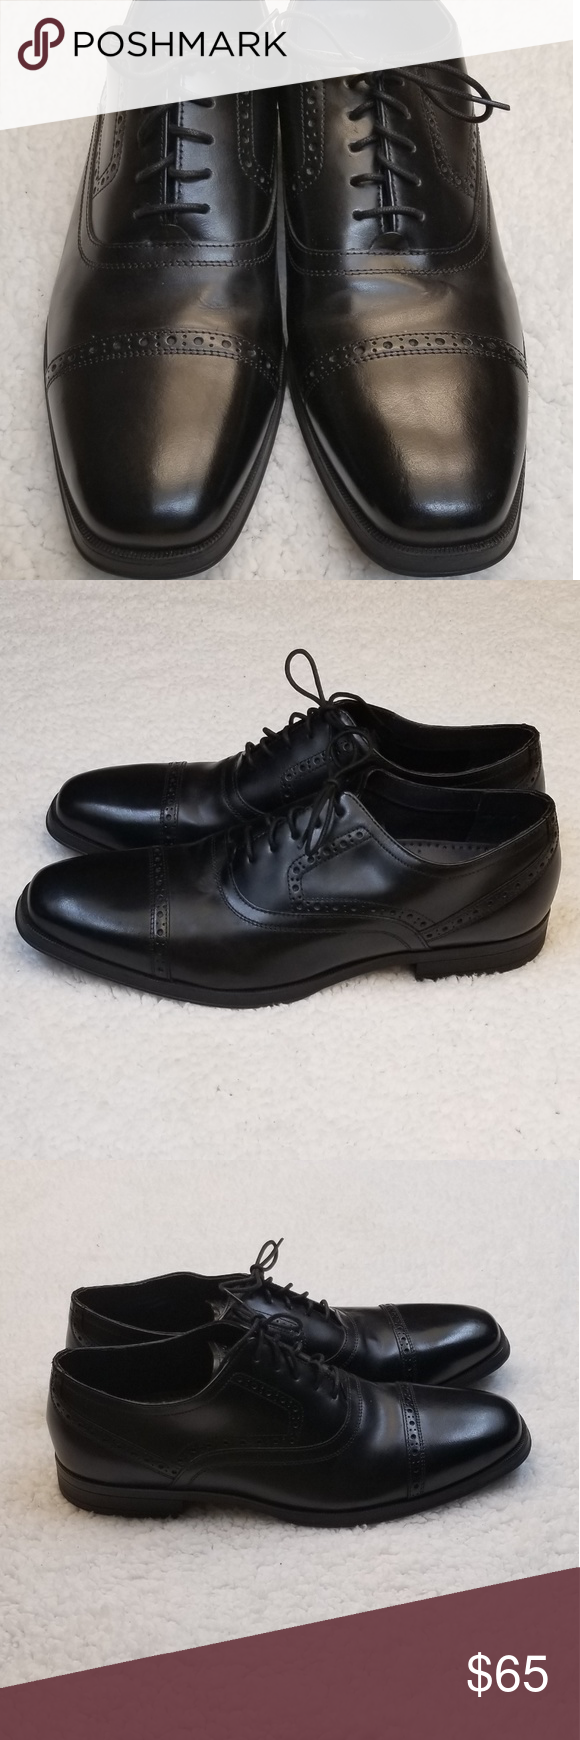 NWOB Cole Haan Grand Os Dress Shoes